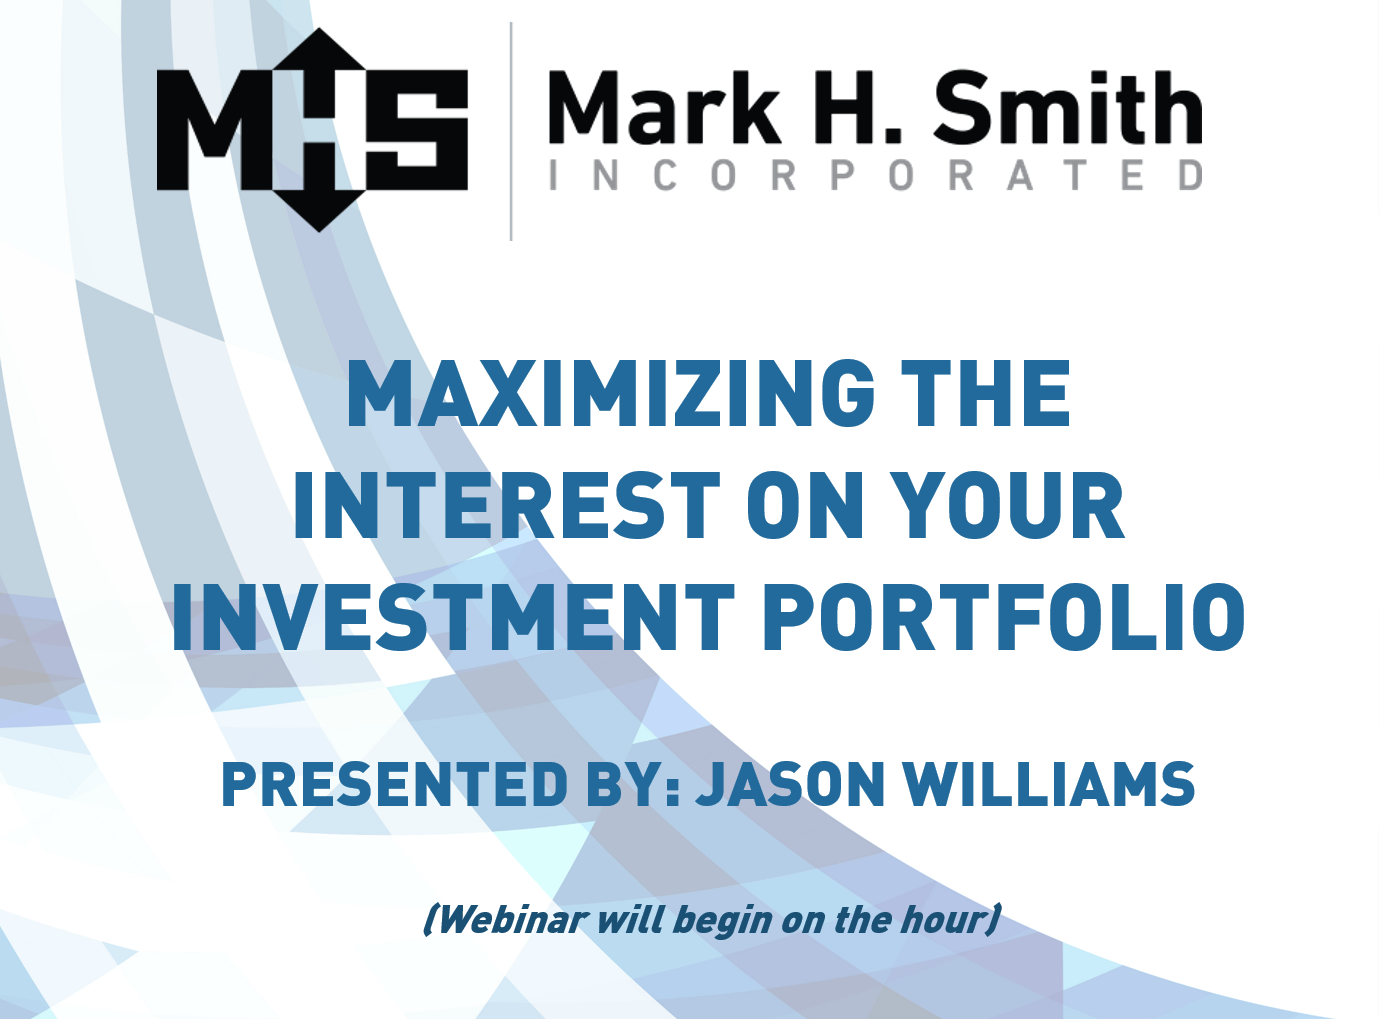 Maximizing the Interest on Your Investment Portfolio